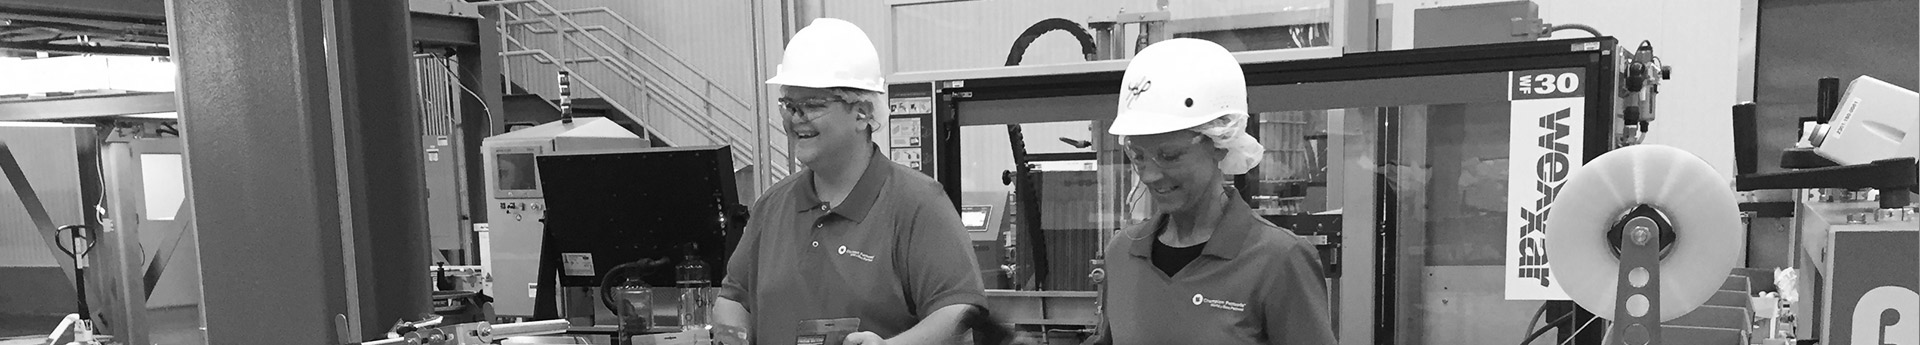 Walter and Kim on the packaging line, DogStar Kitchens